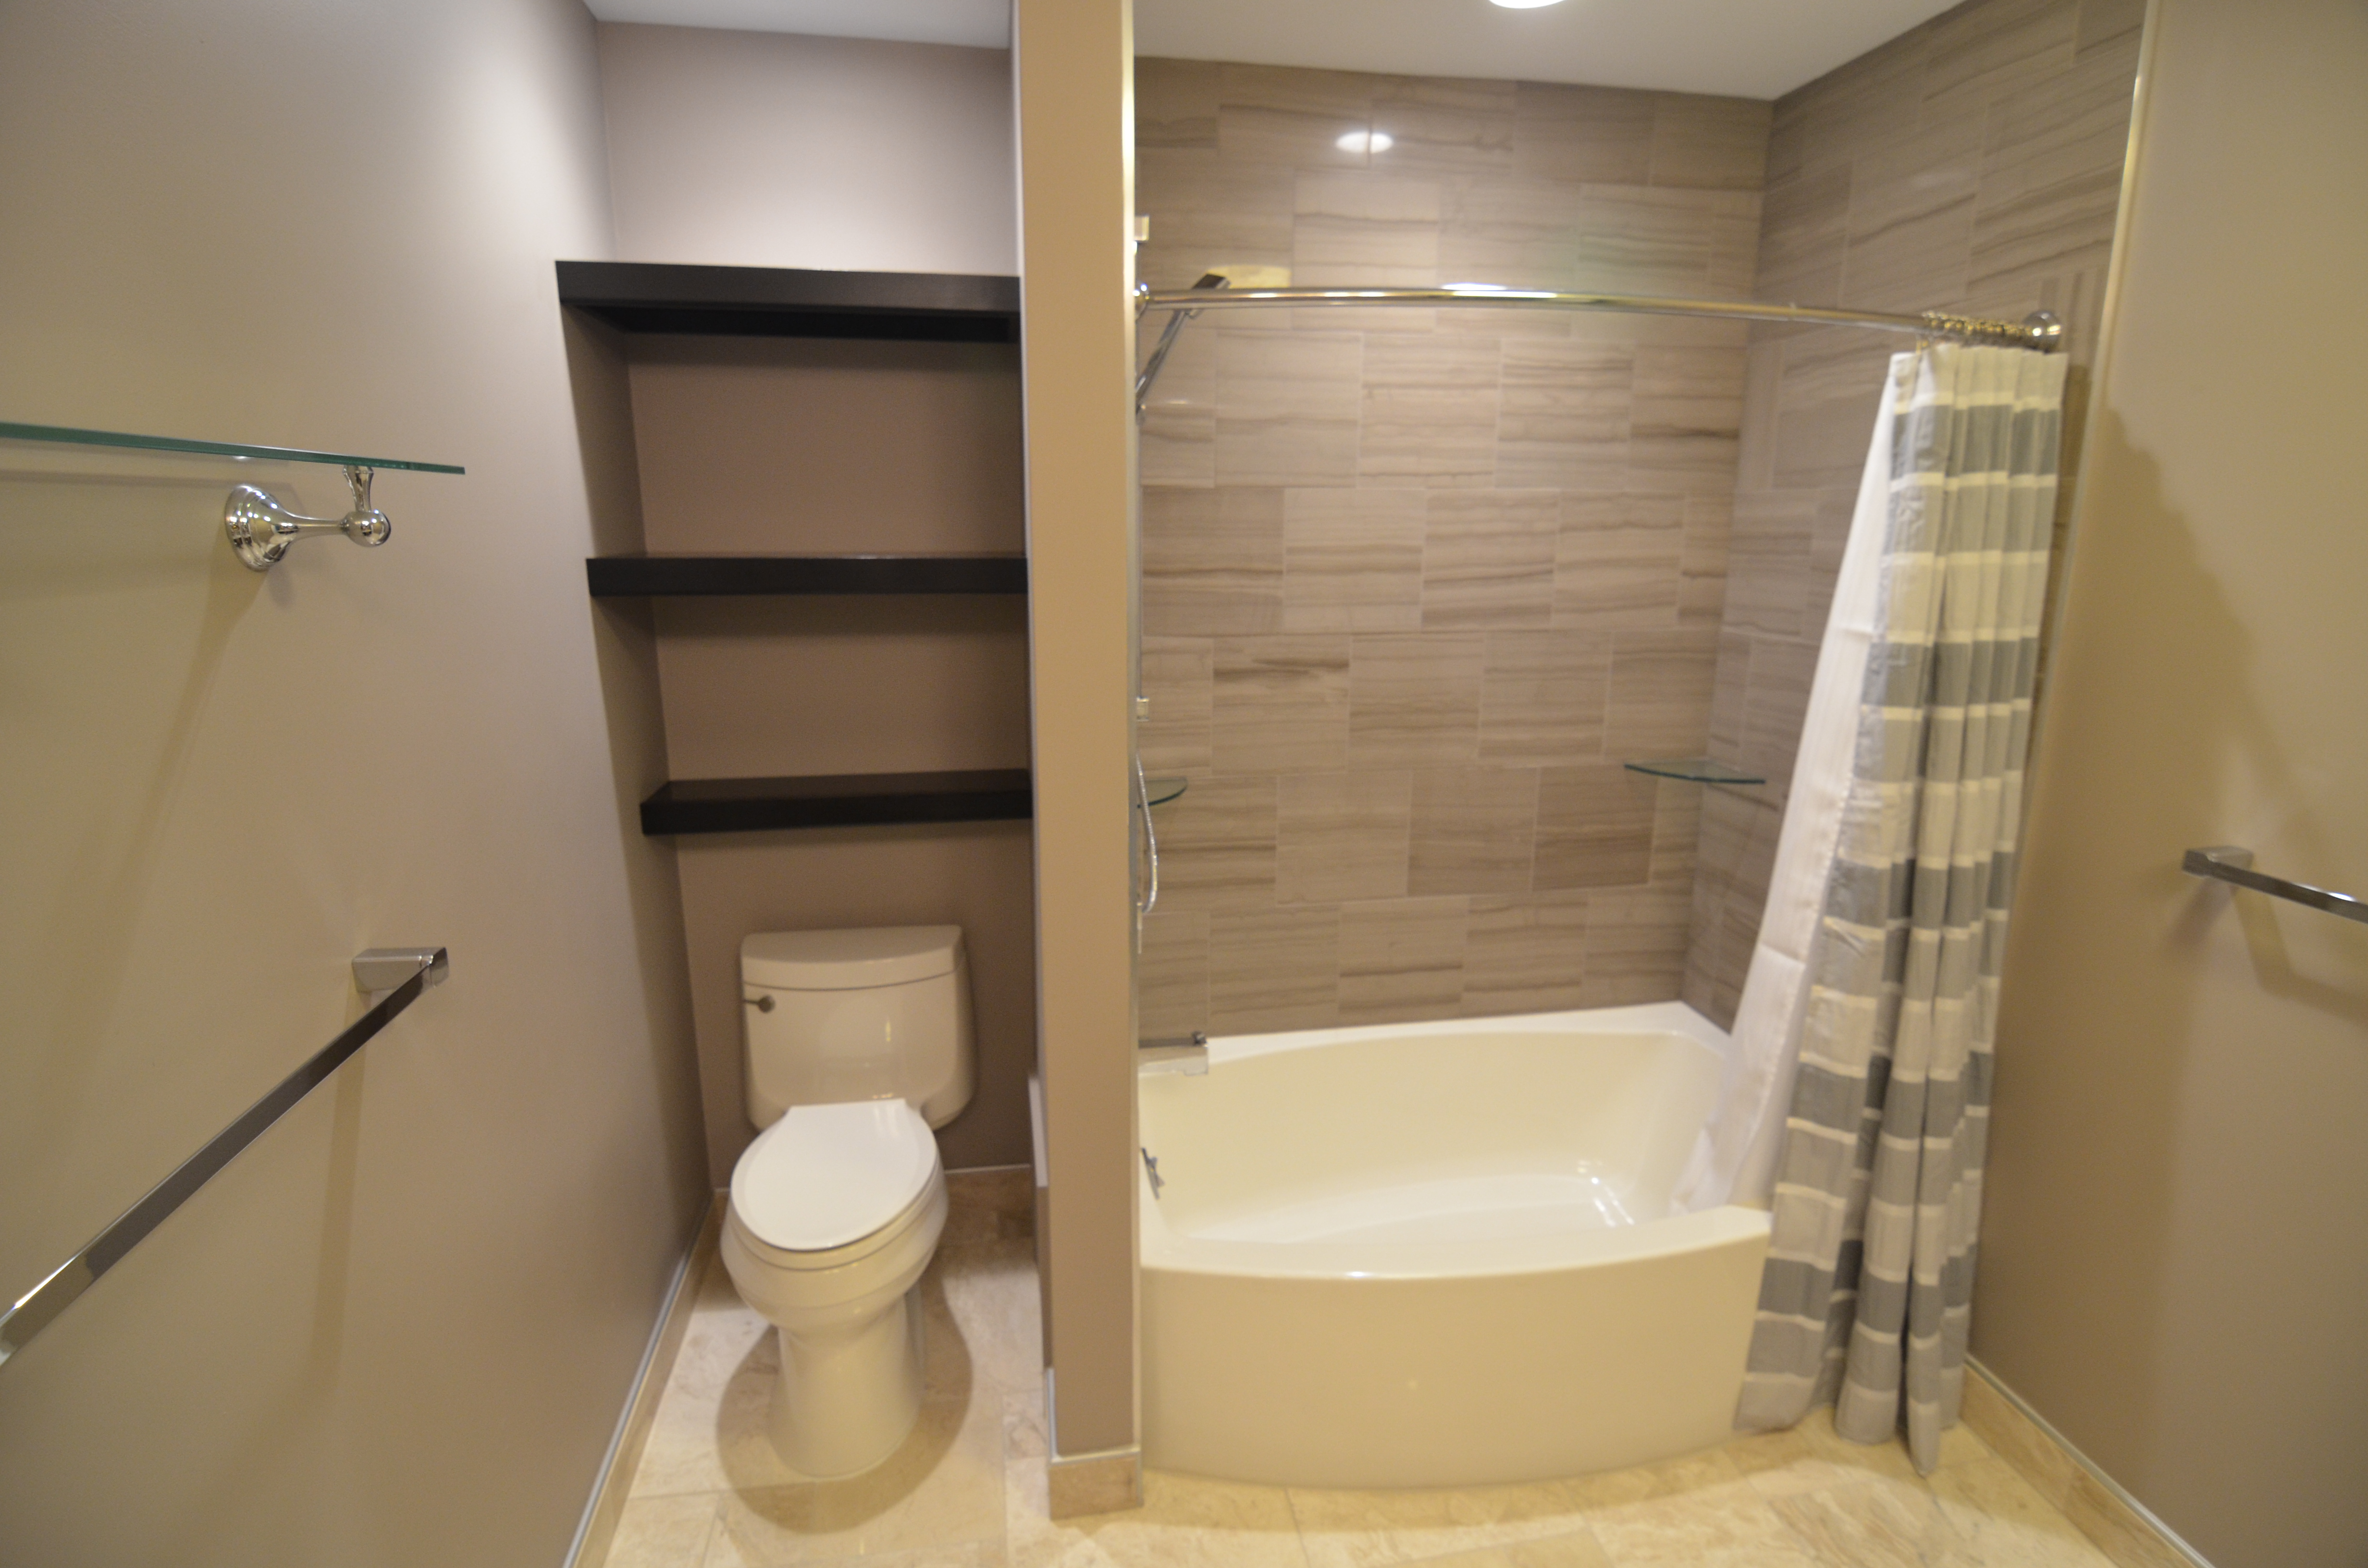 Dunhill Drive Hall Bathroom Remodeling Voorhees NJ By Next - Bathroom remodeling cherry hill